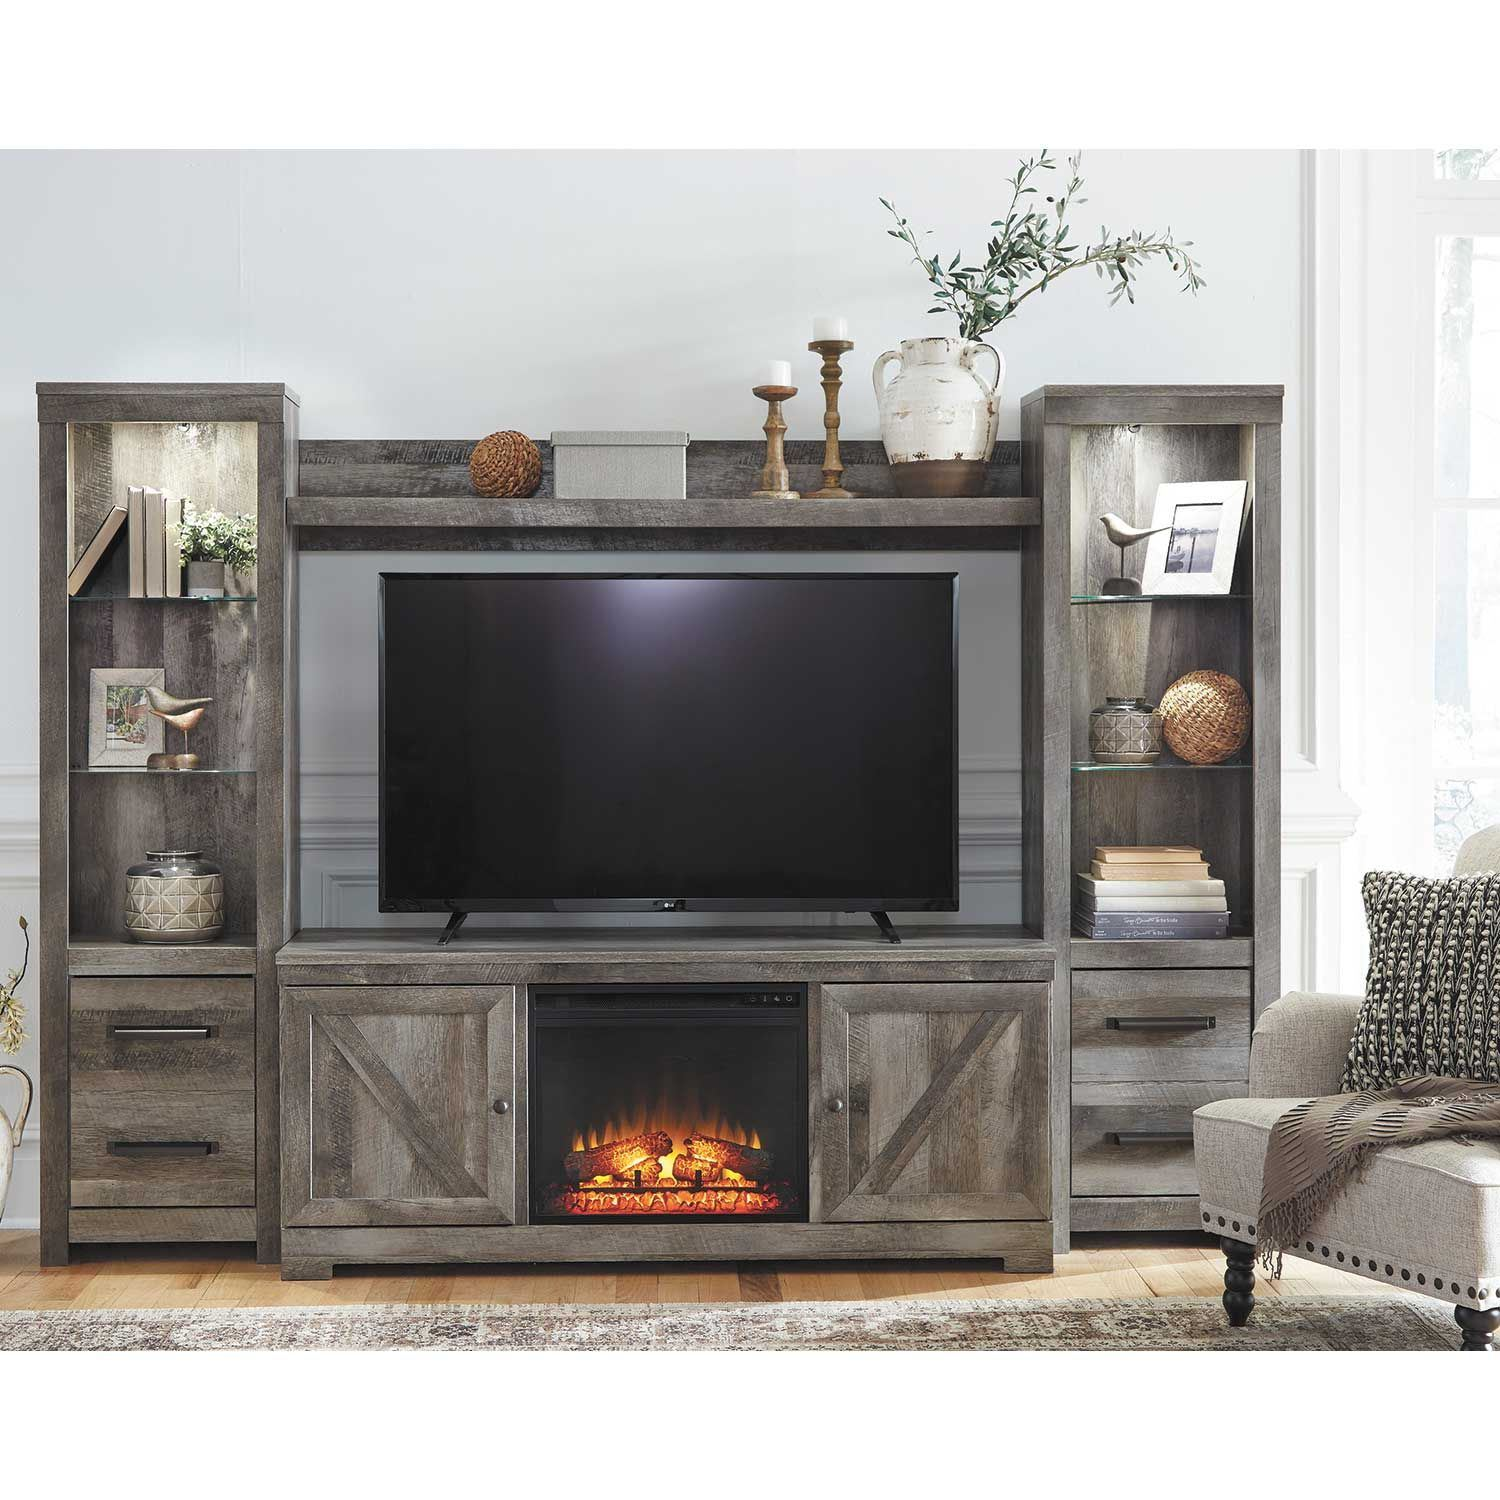 Picture of Wynnlow Fireplace Wall Unit